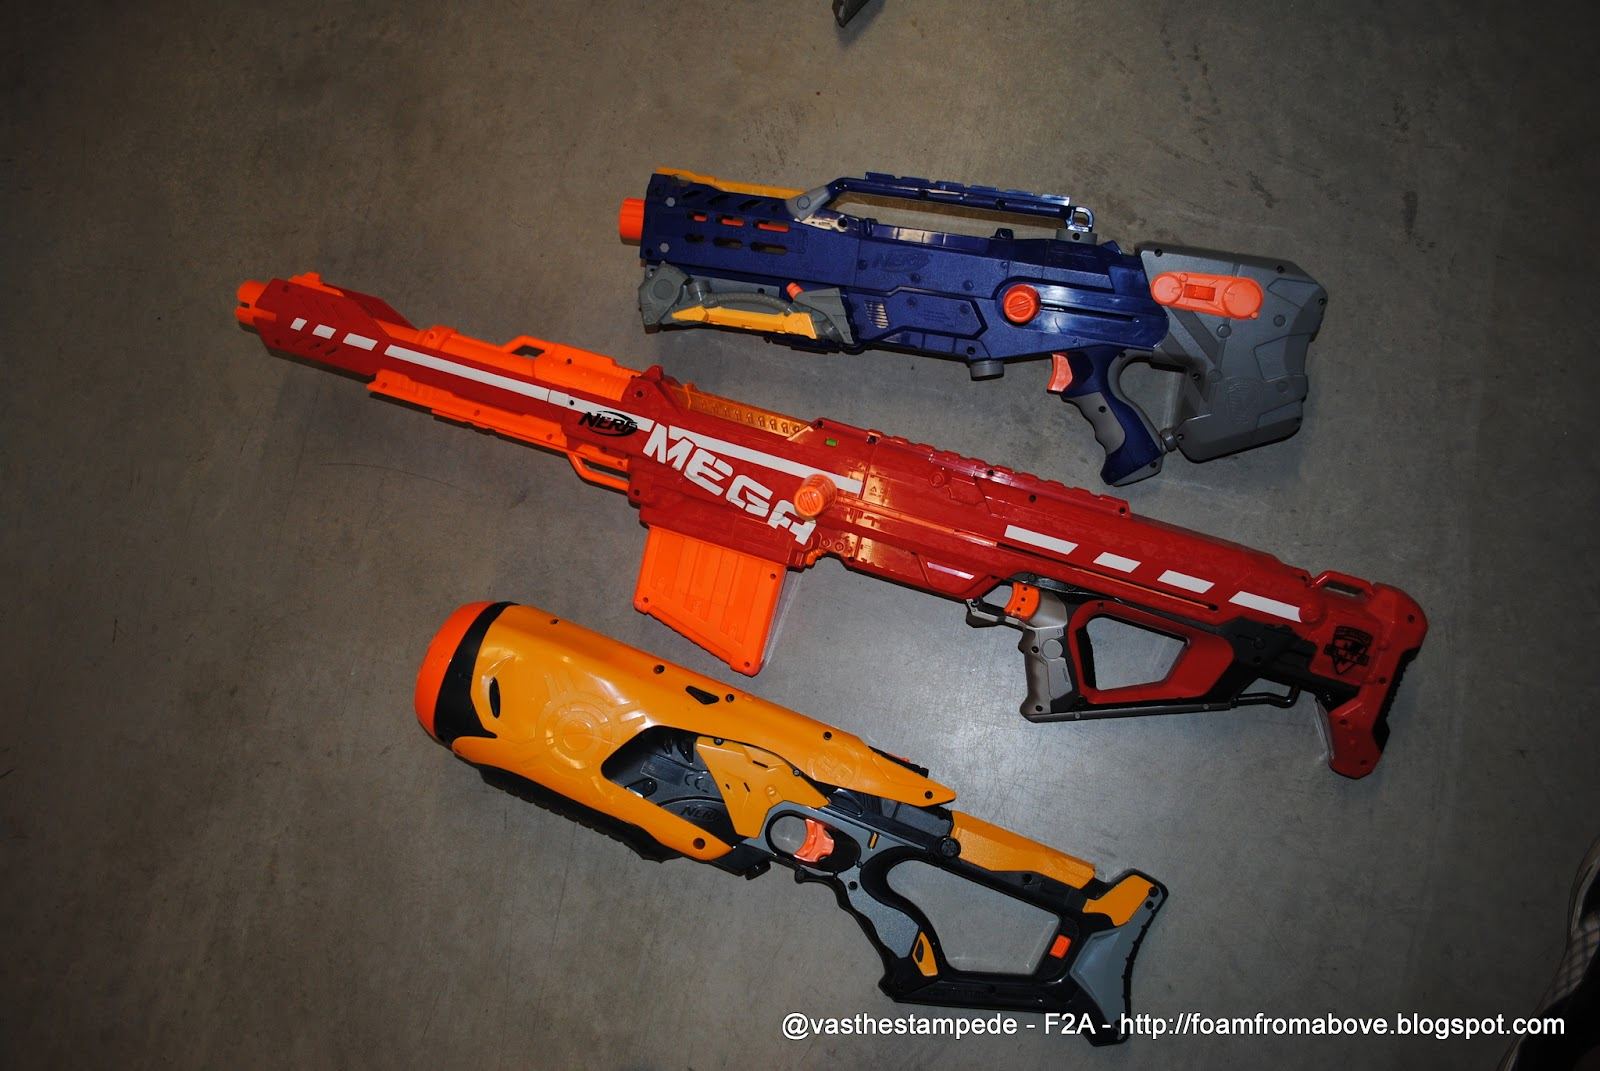 Sniper Nerf Guns At Walmart Pictures to Pin on Pinterest ...